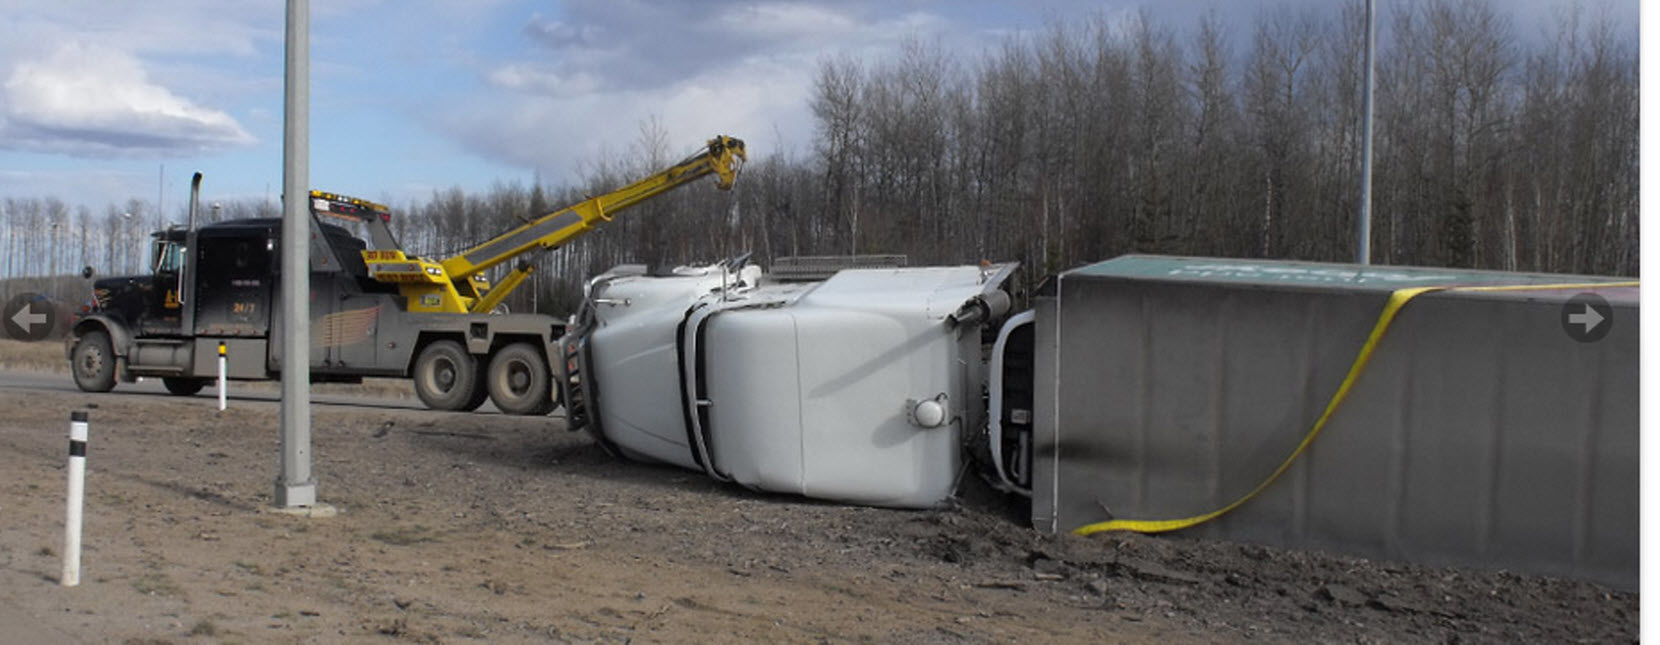 A-1 Equipment Hauling & Towing in Fort McMurray: Heavy Hauler towing